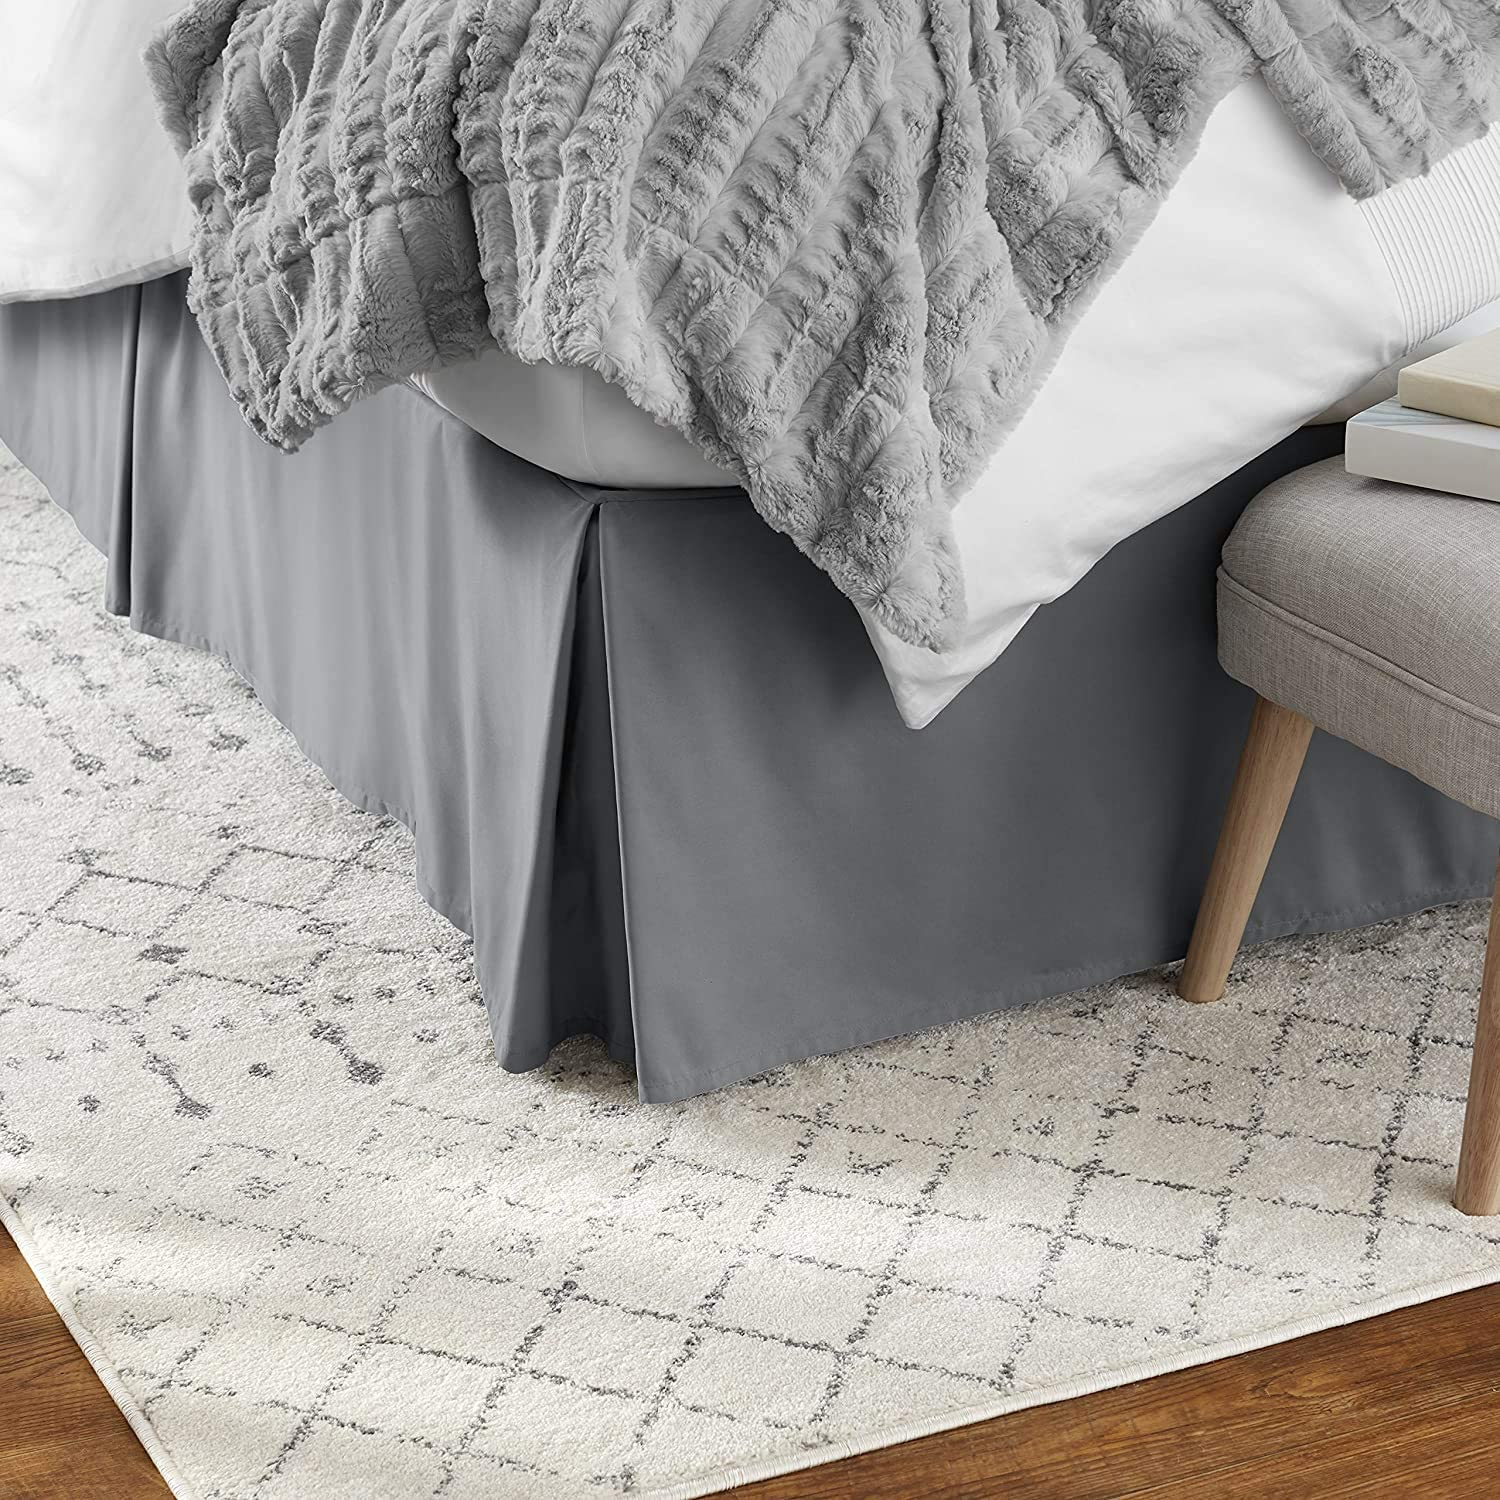 Bed Skirt Cal-King Max 67% OFF 15 Inch Drop 100% Hote Don't miss the campaign Cotton Solid Grey Dark